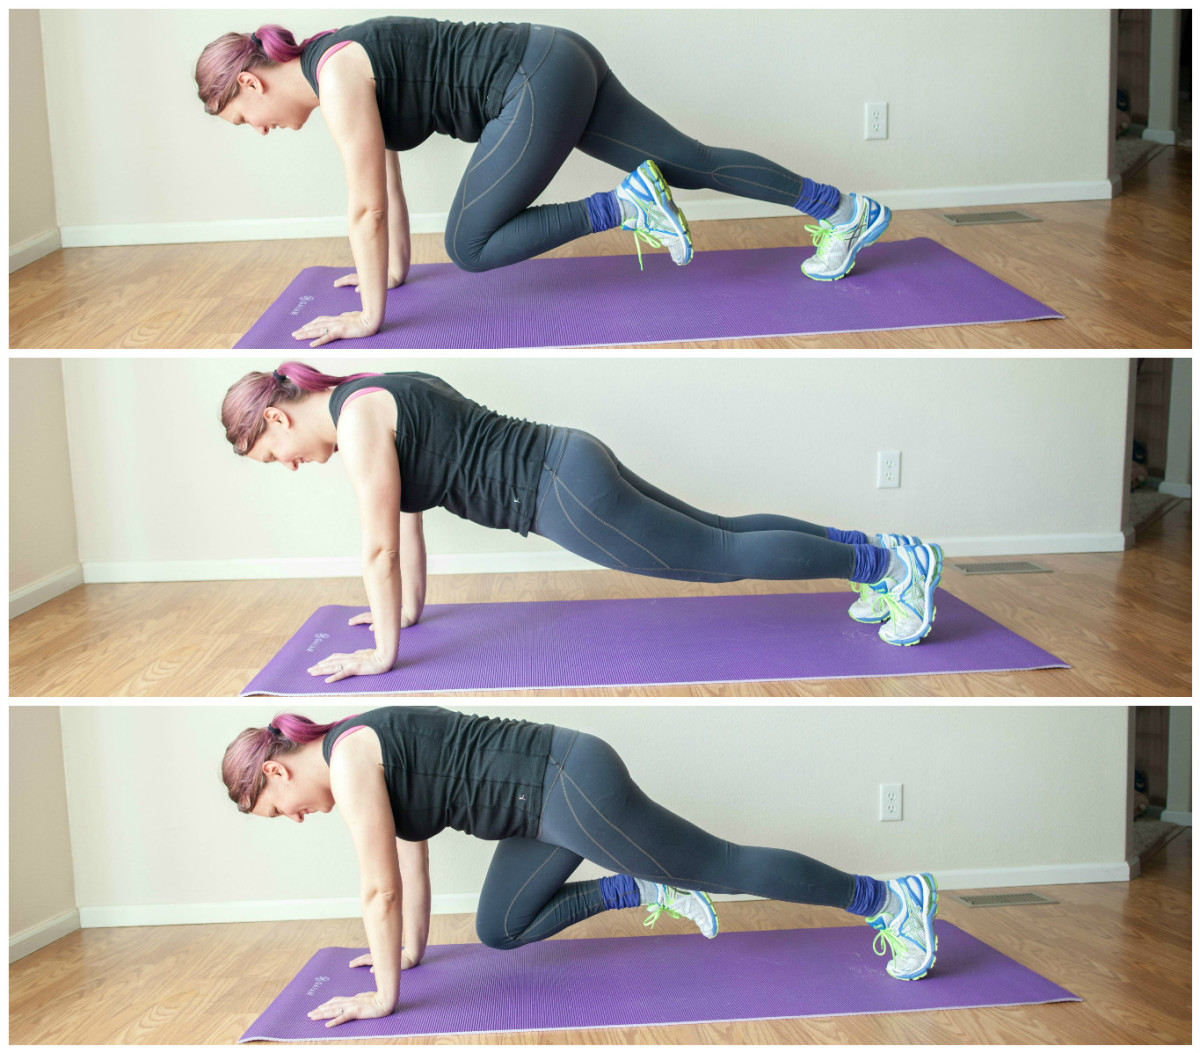 The back-and-forth mountain climber exercise is great cardio!